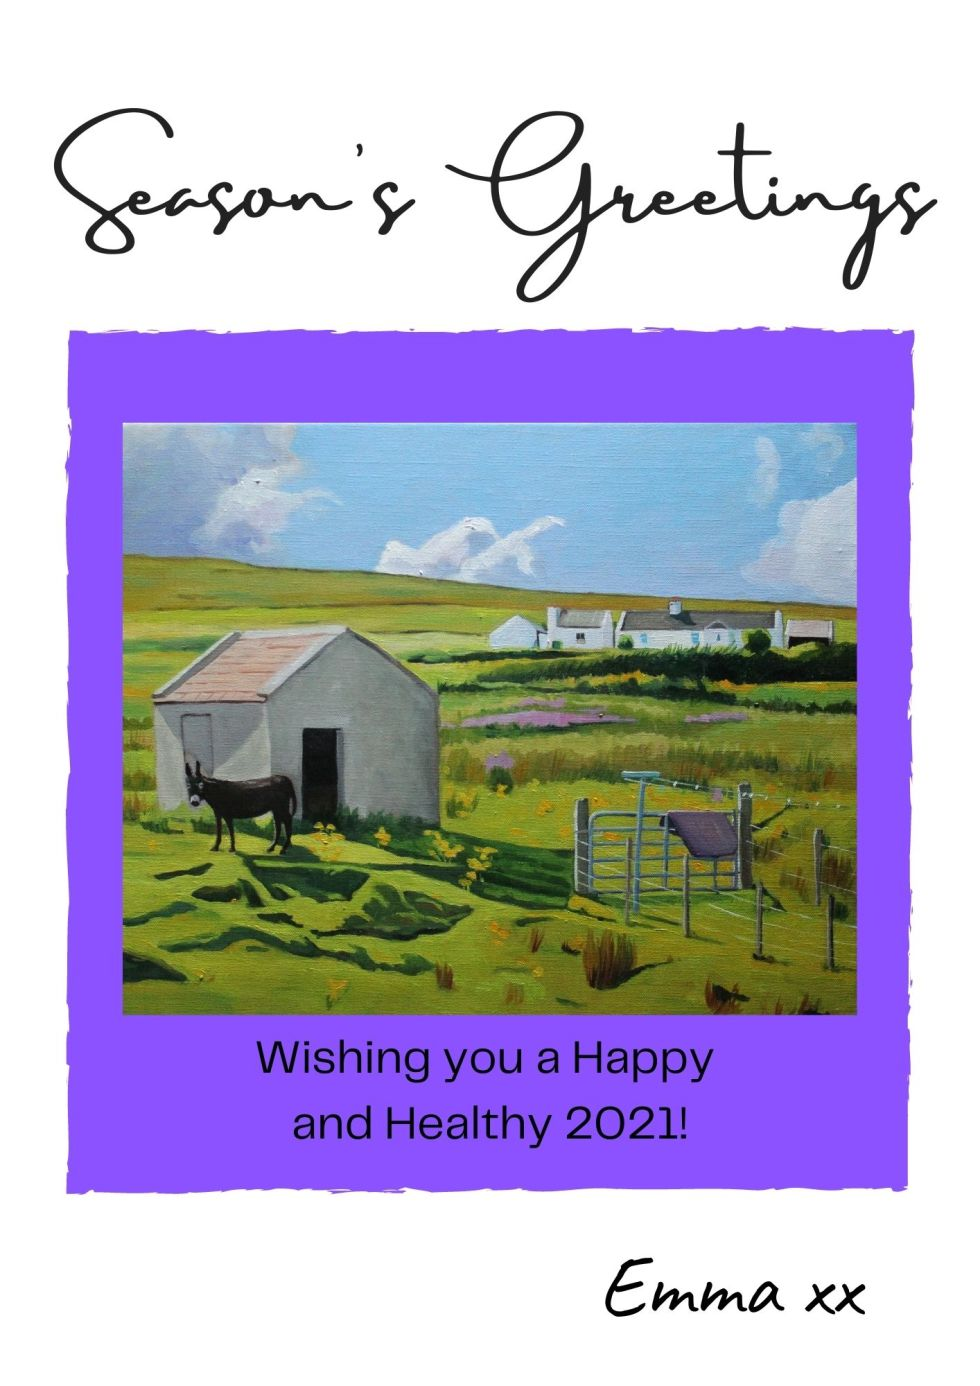 Season's Greetings from an Arranmore Donkey